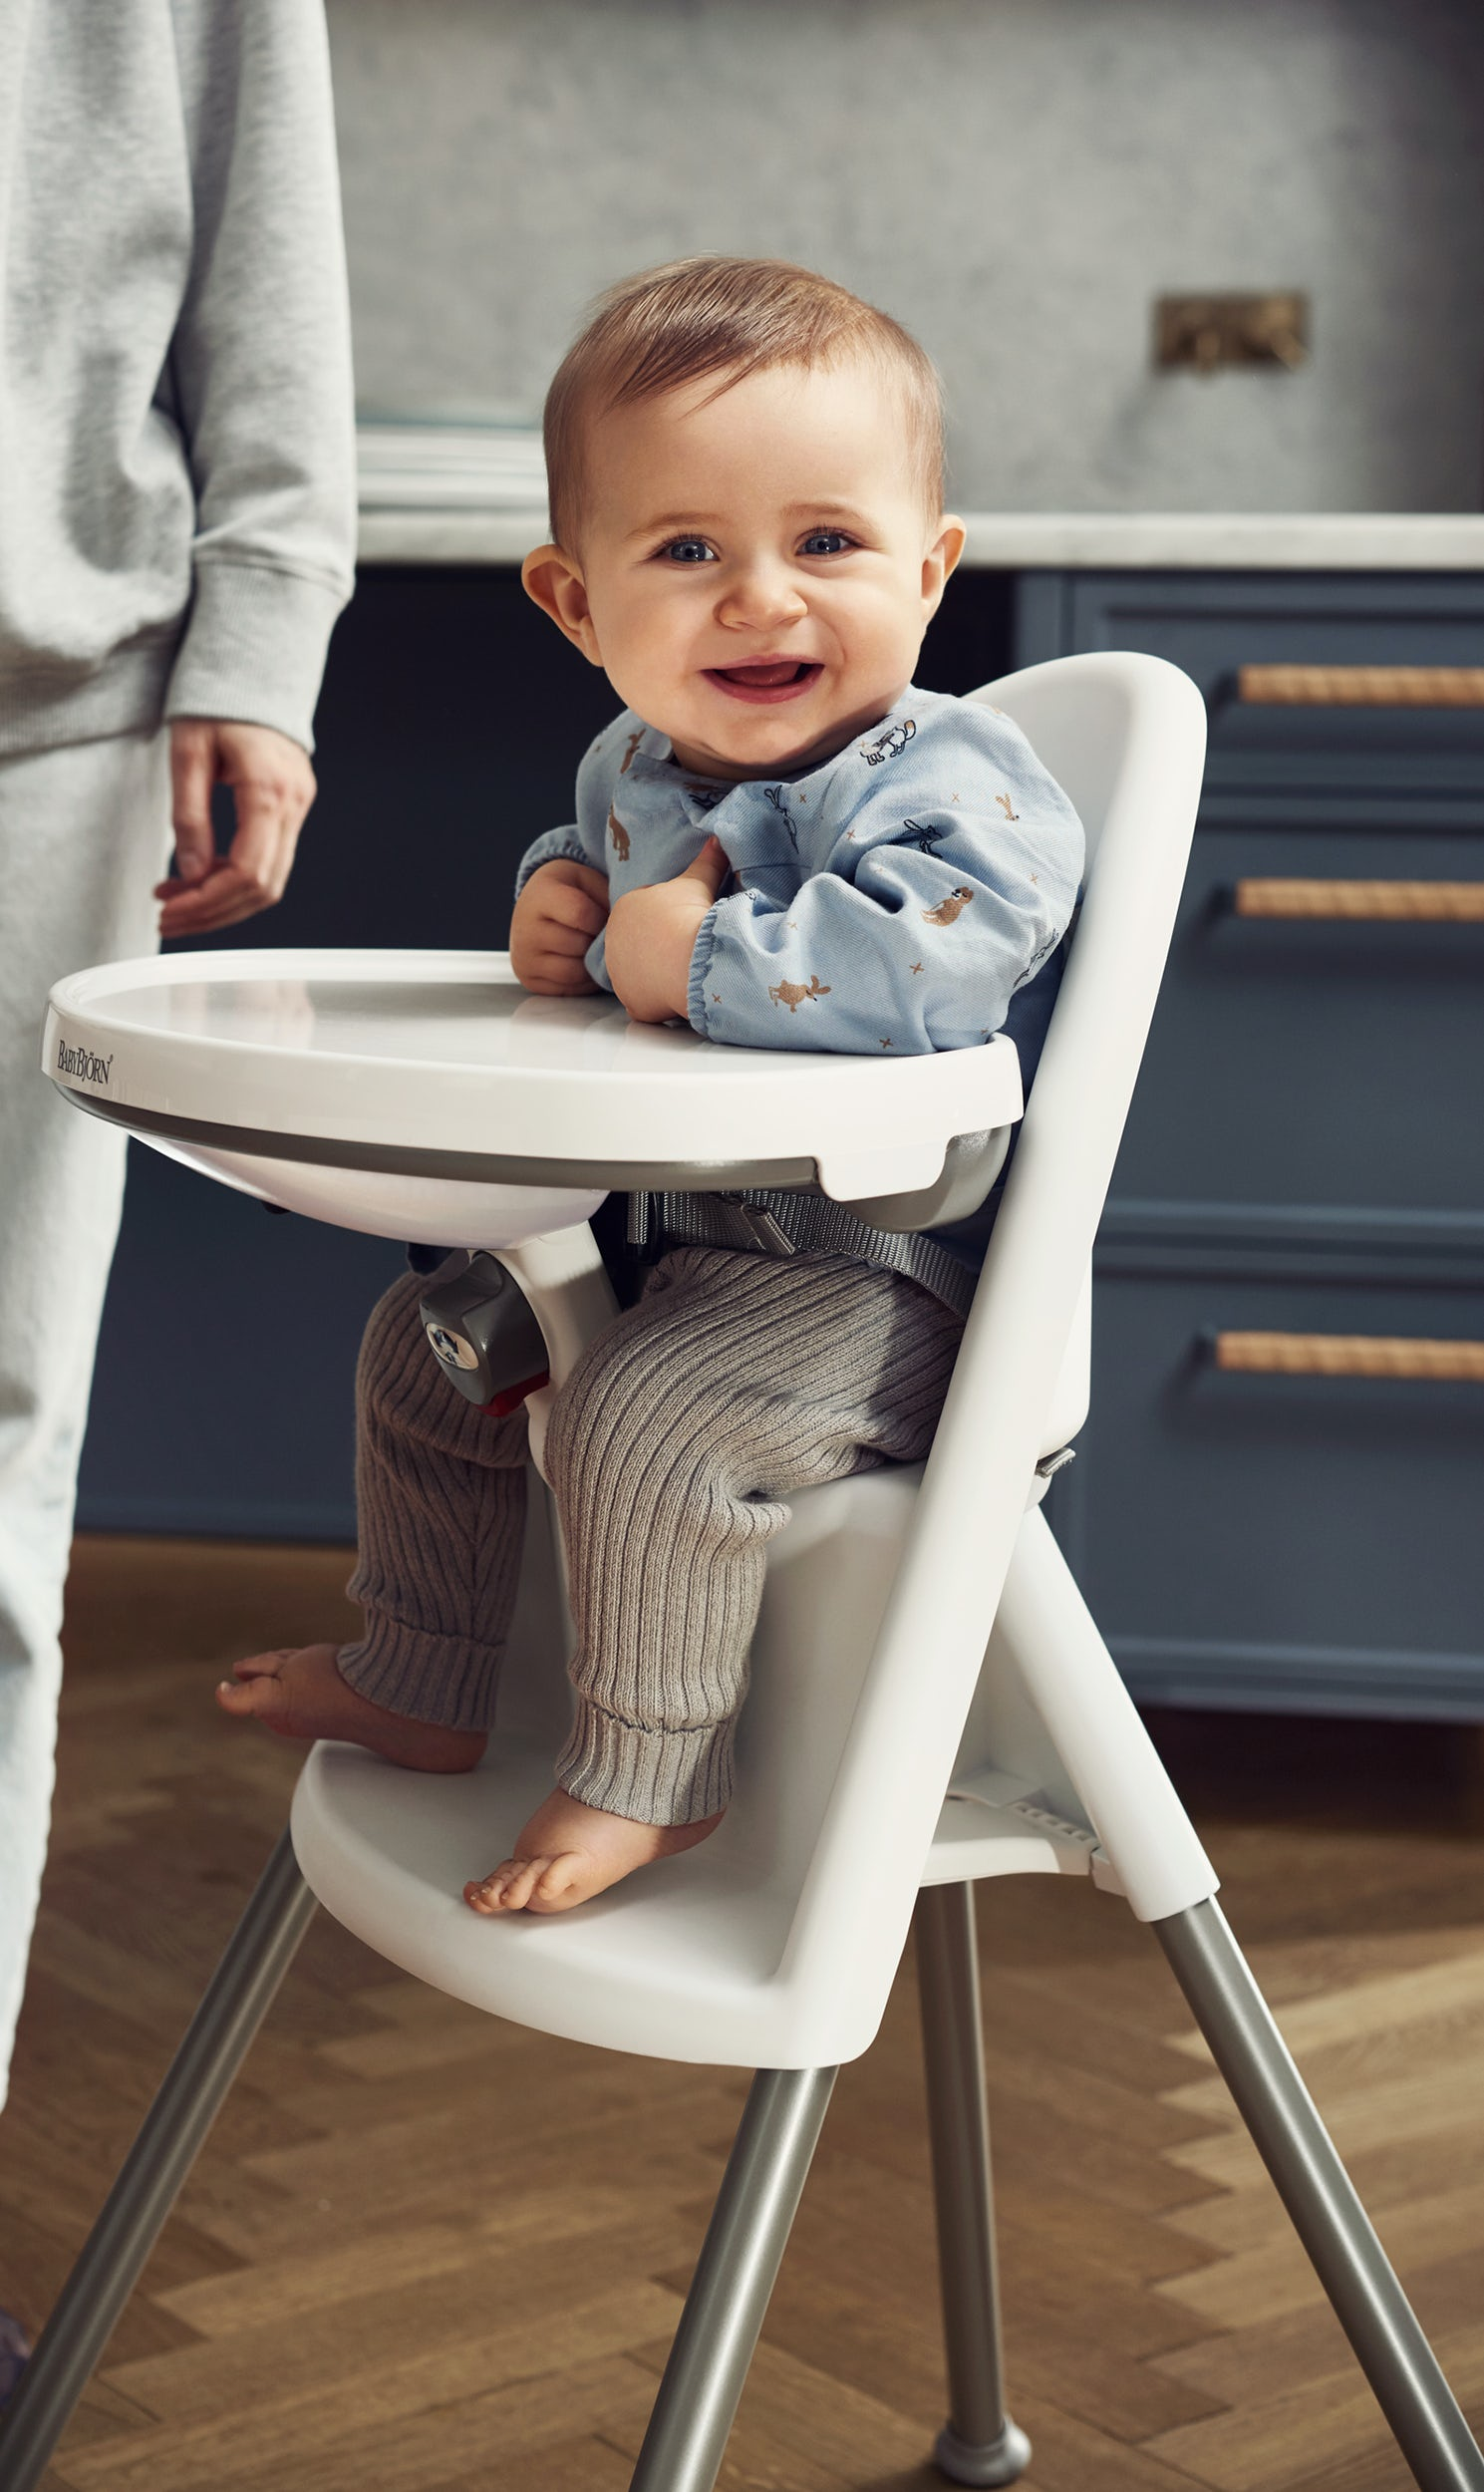 Egg Baby High Chair Infant High Chair Safe Smart Design BabybjÖrn